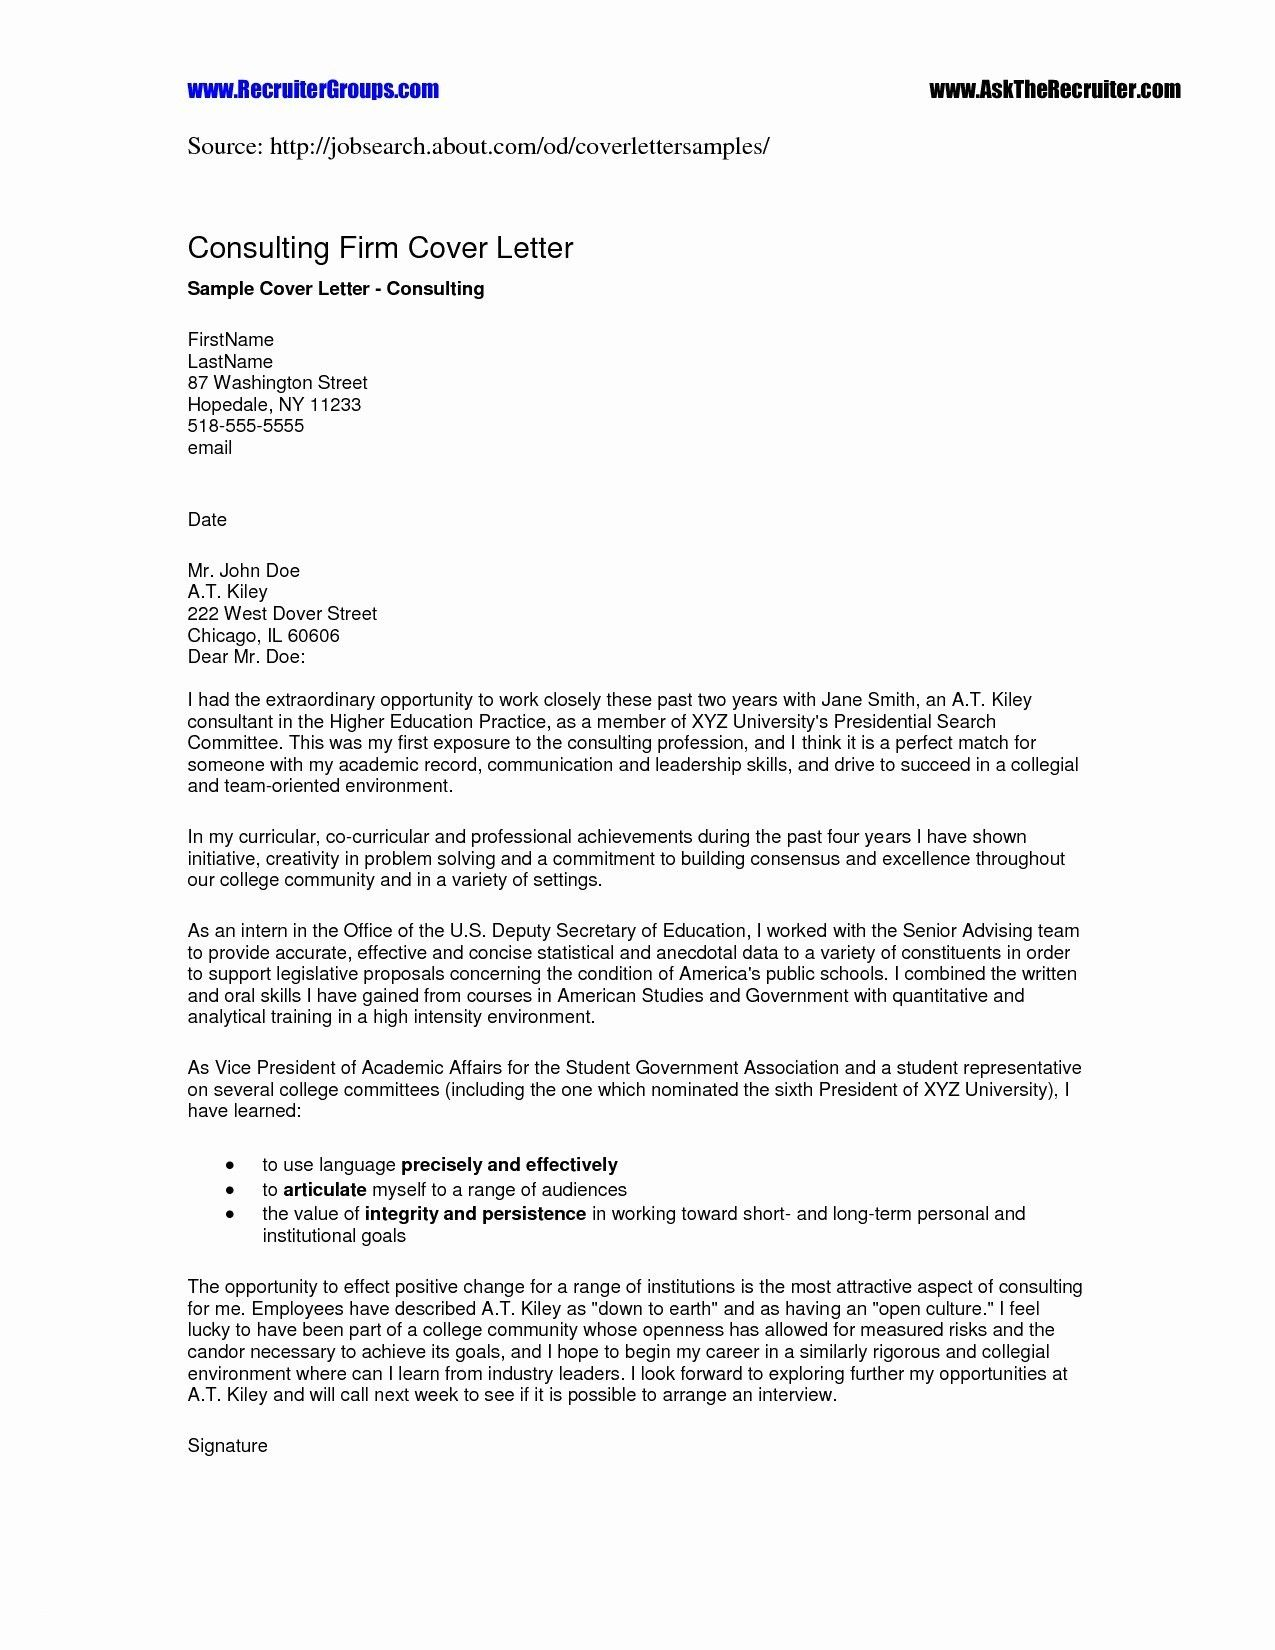 Business Letter Format Two Signatures